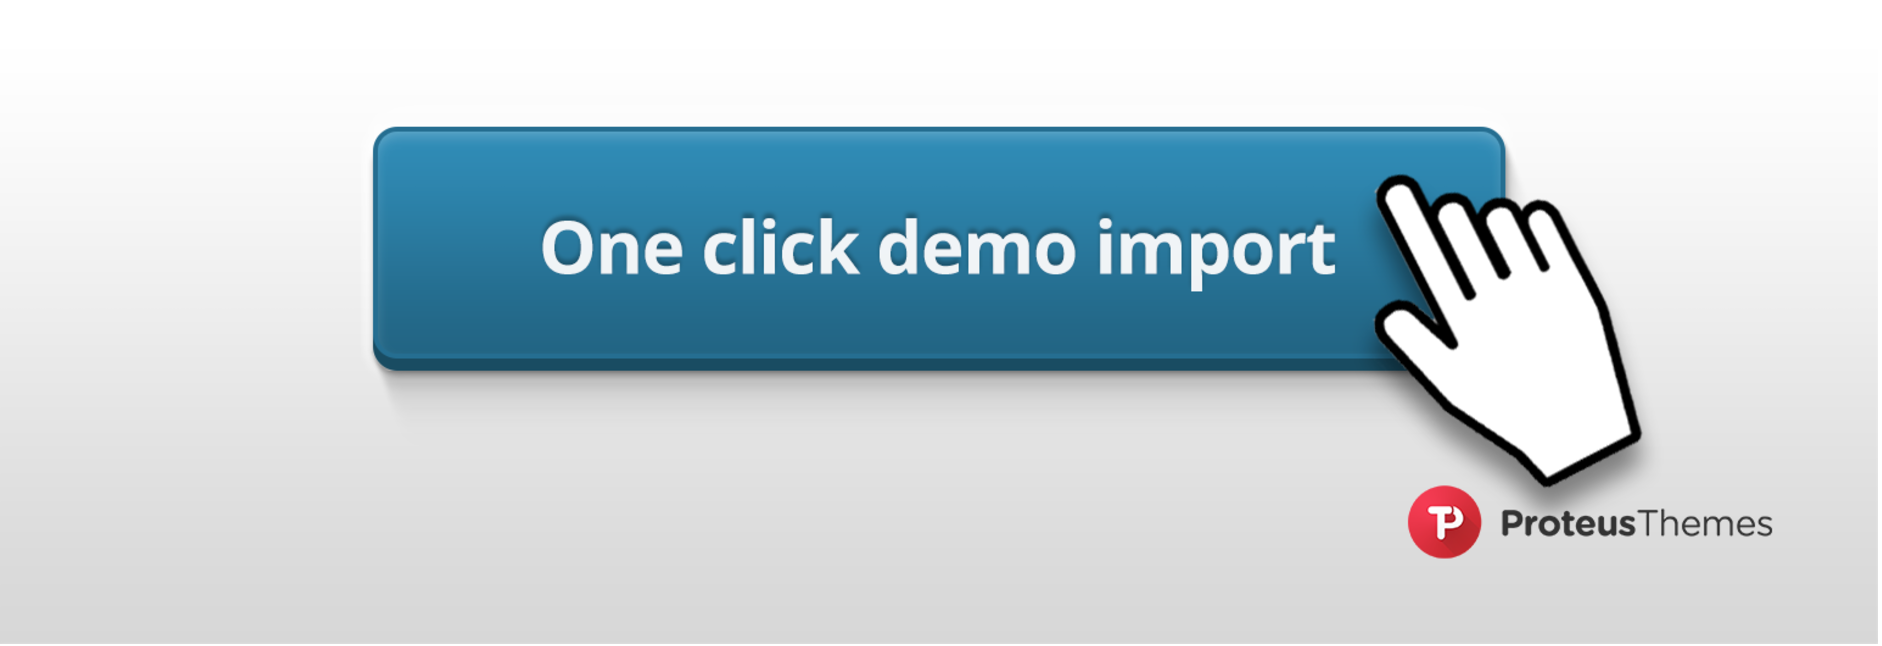 one click demo import plugin